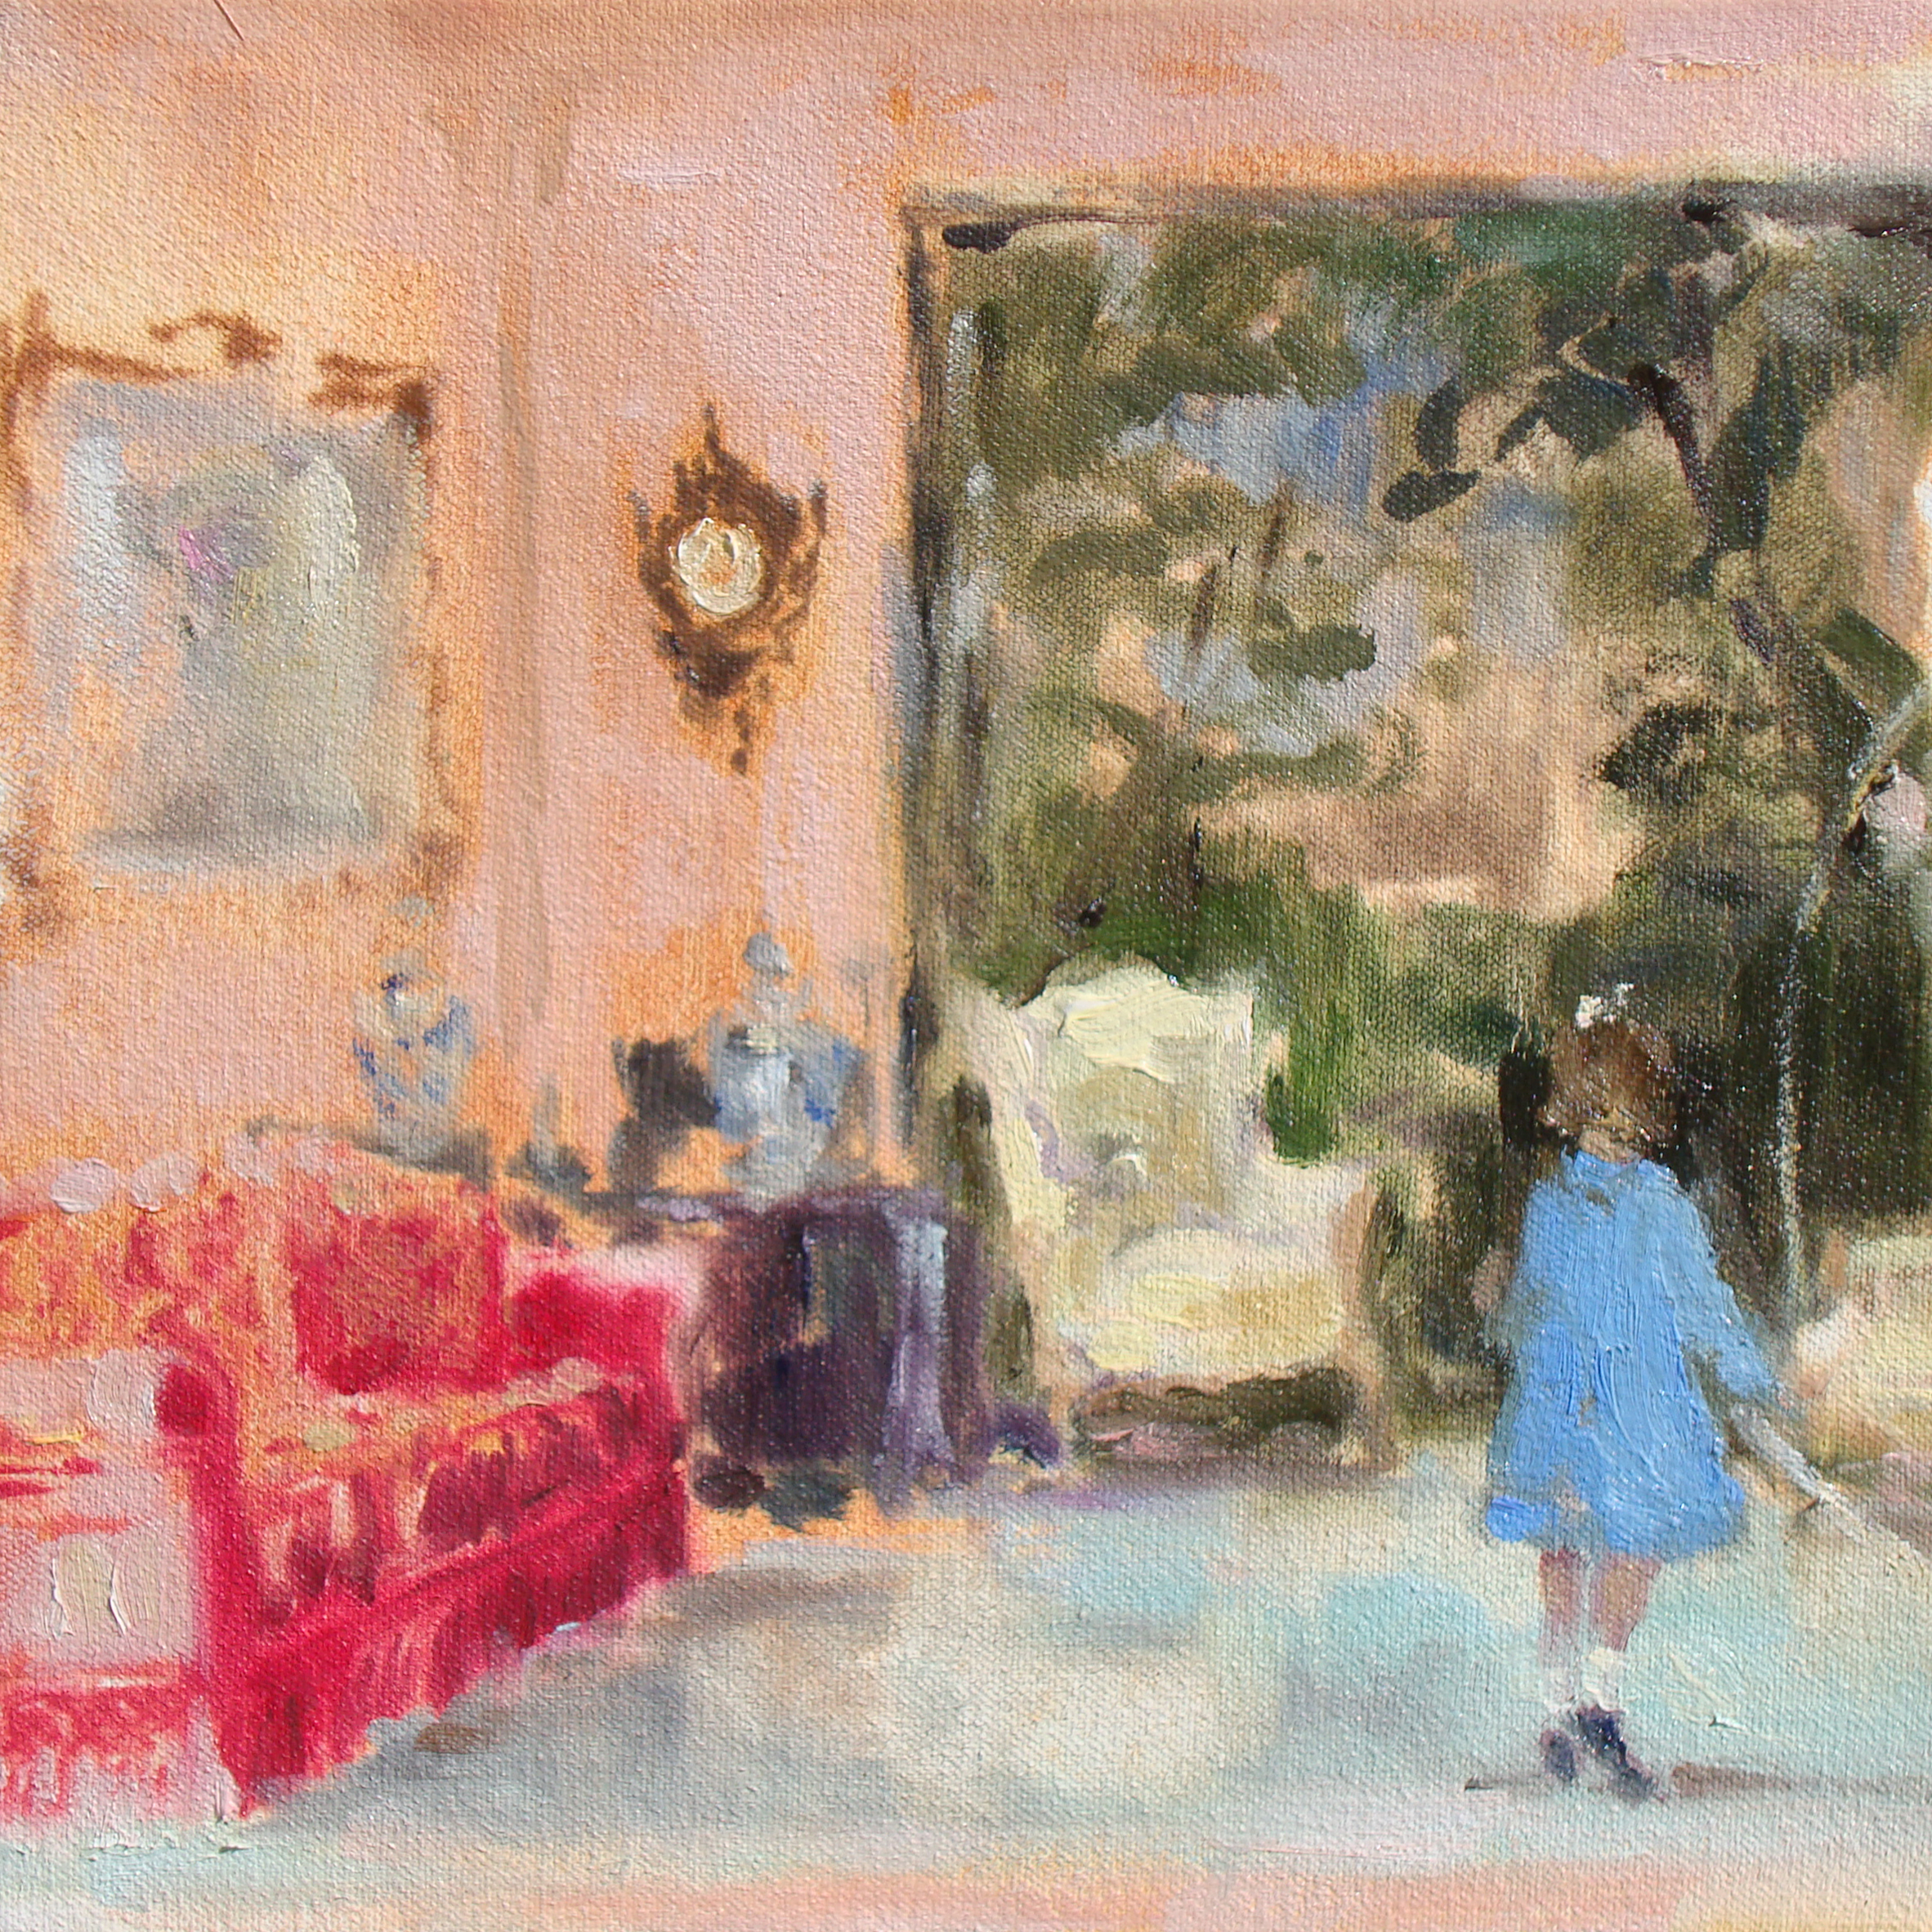 Vintage Suite (double-dutch in the living room) 8 x 8 in. oil on canvas 2011